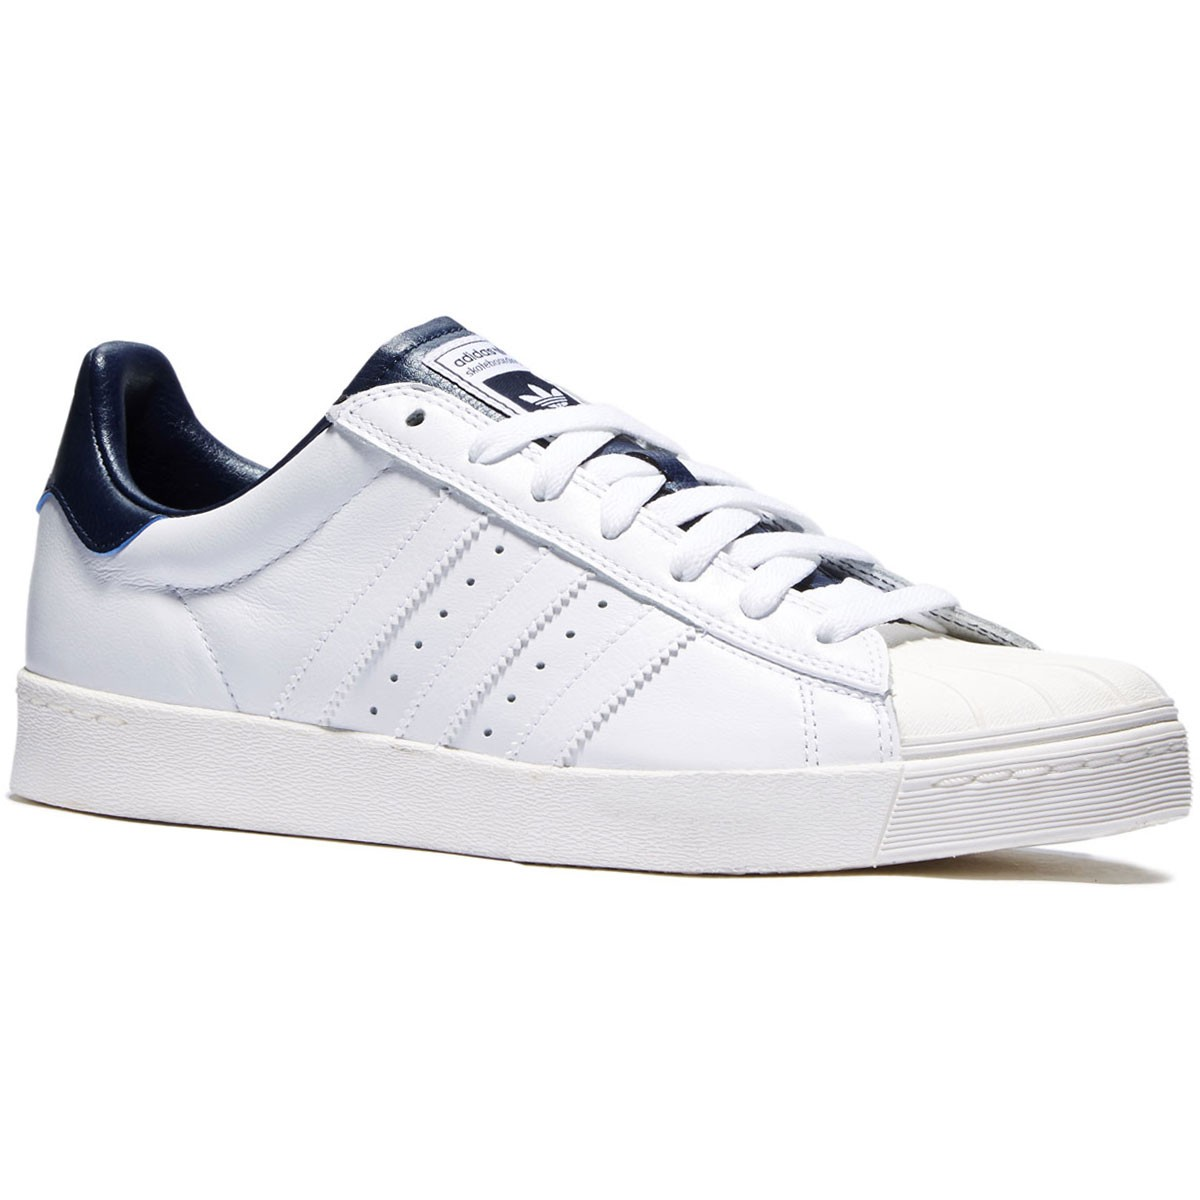 Cheap SuperSTAR VULC ADV SHOE Surf Dive 'n' Ski